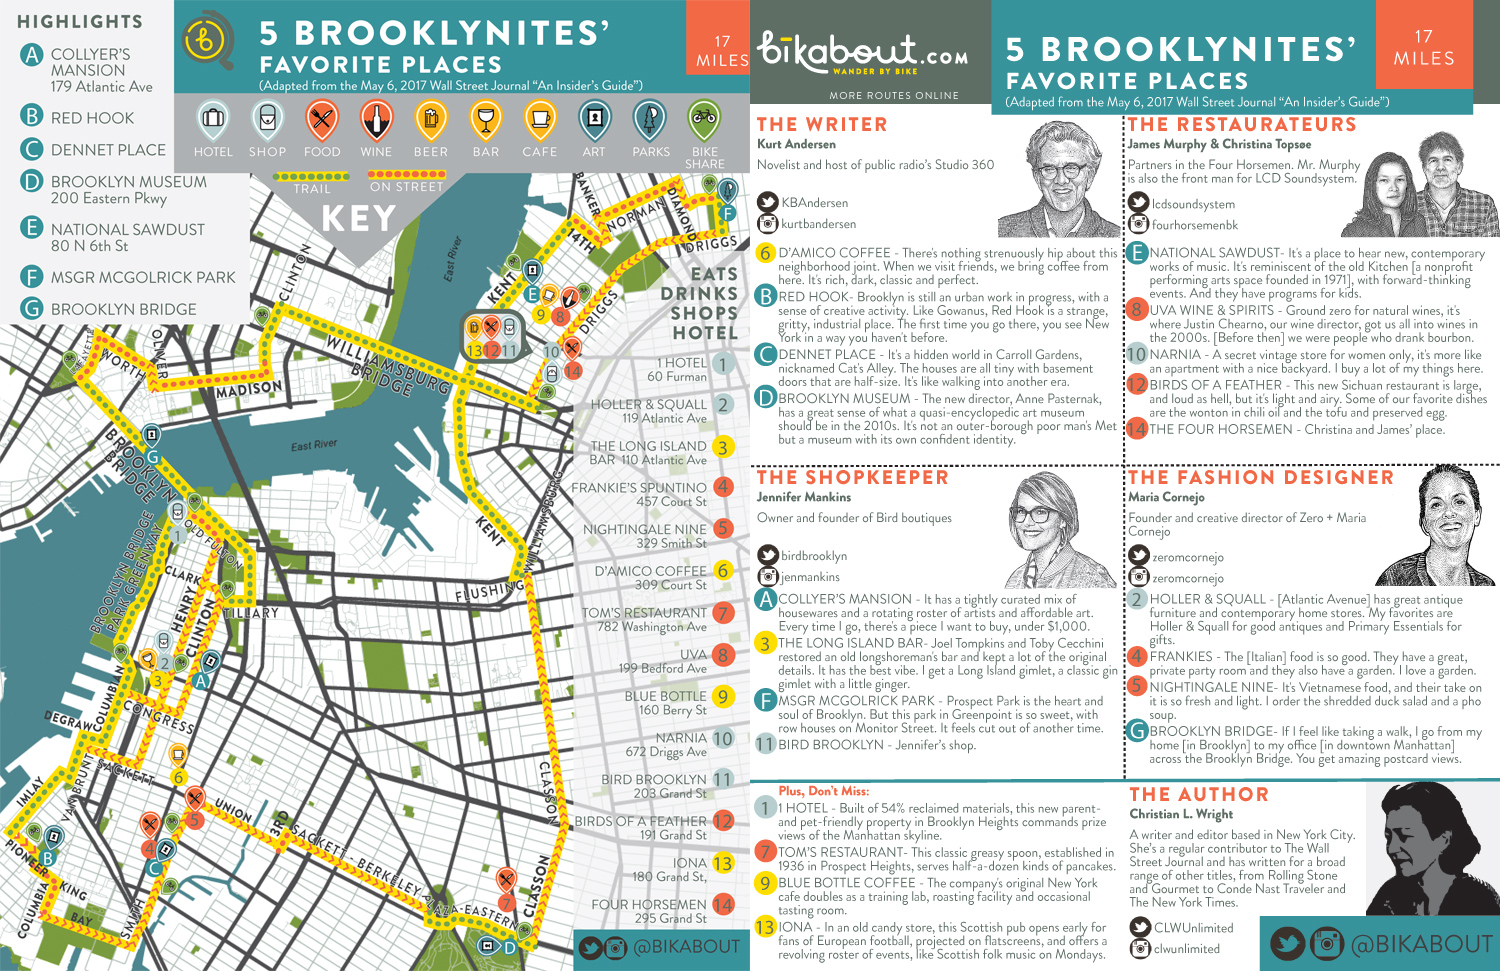 Map of 5 Brooklynites' Favorite Places